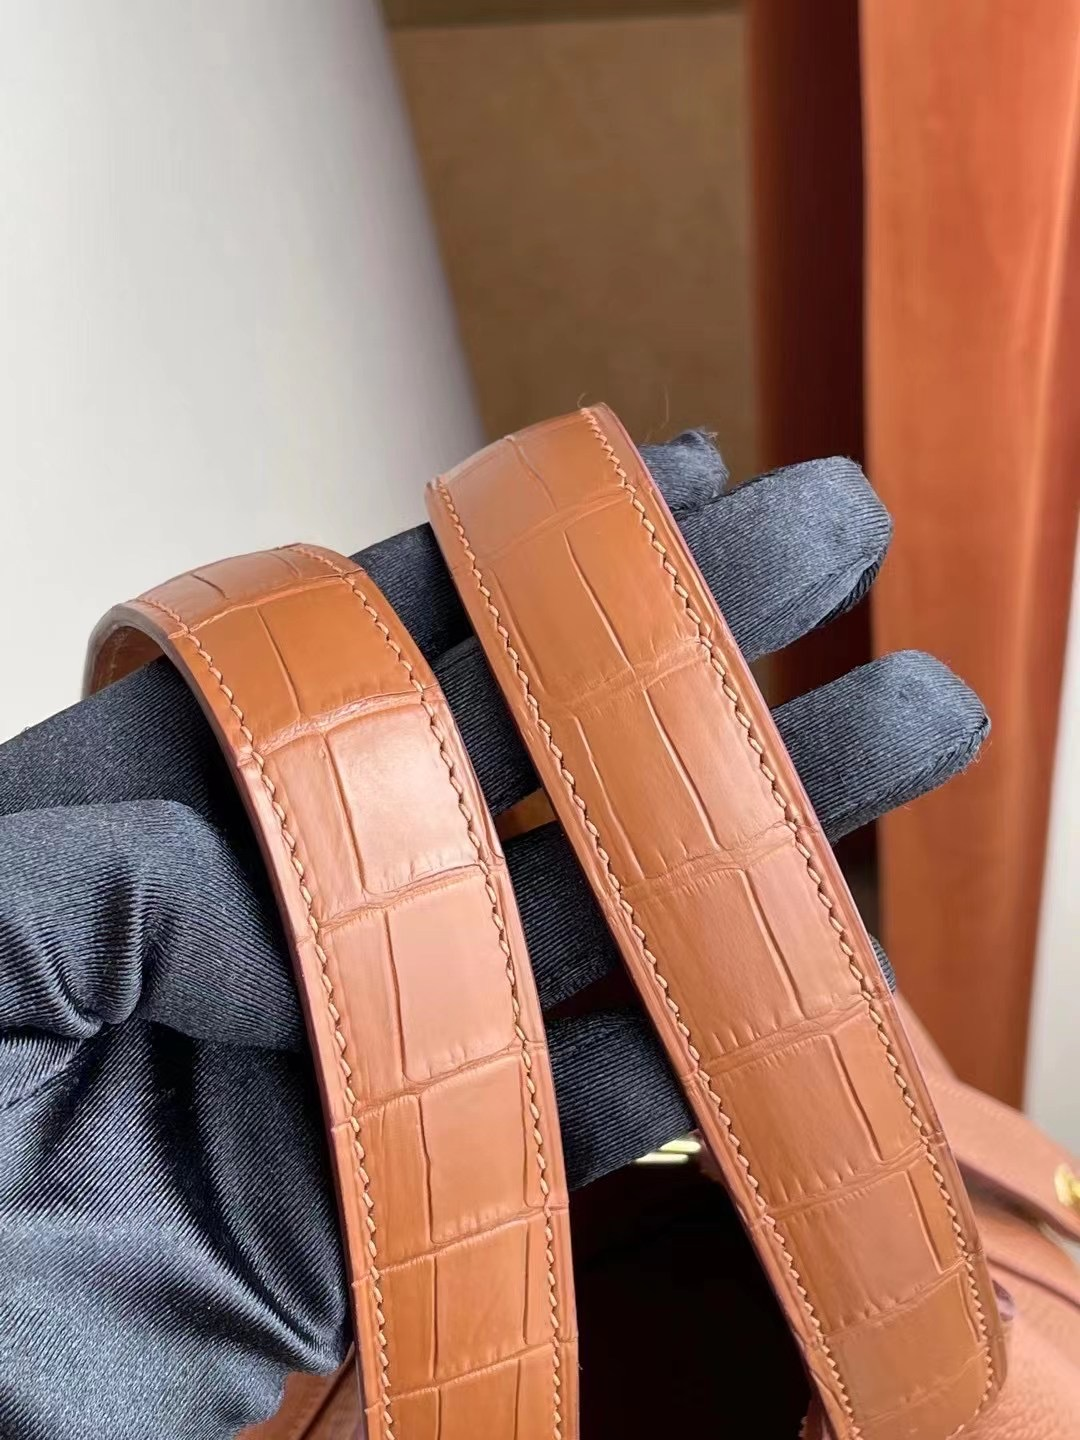 Hermes Picotin Lock 18 Touch Clemence/Matte Crocodile 37 Gold 金棕色